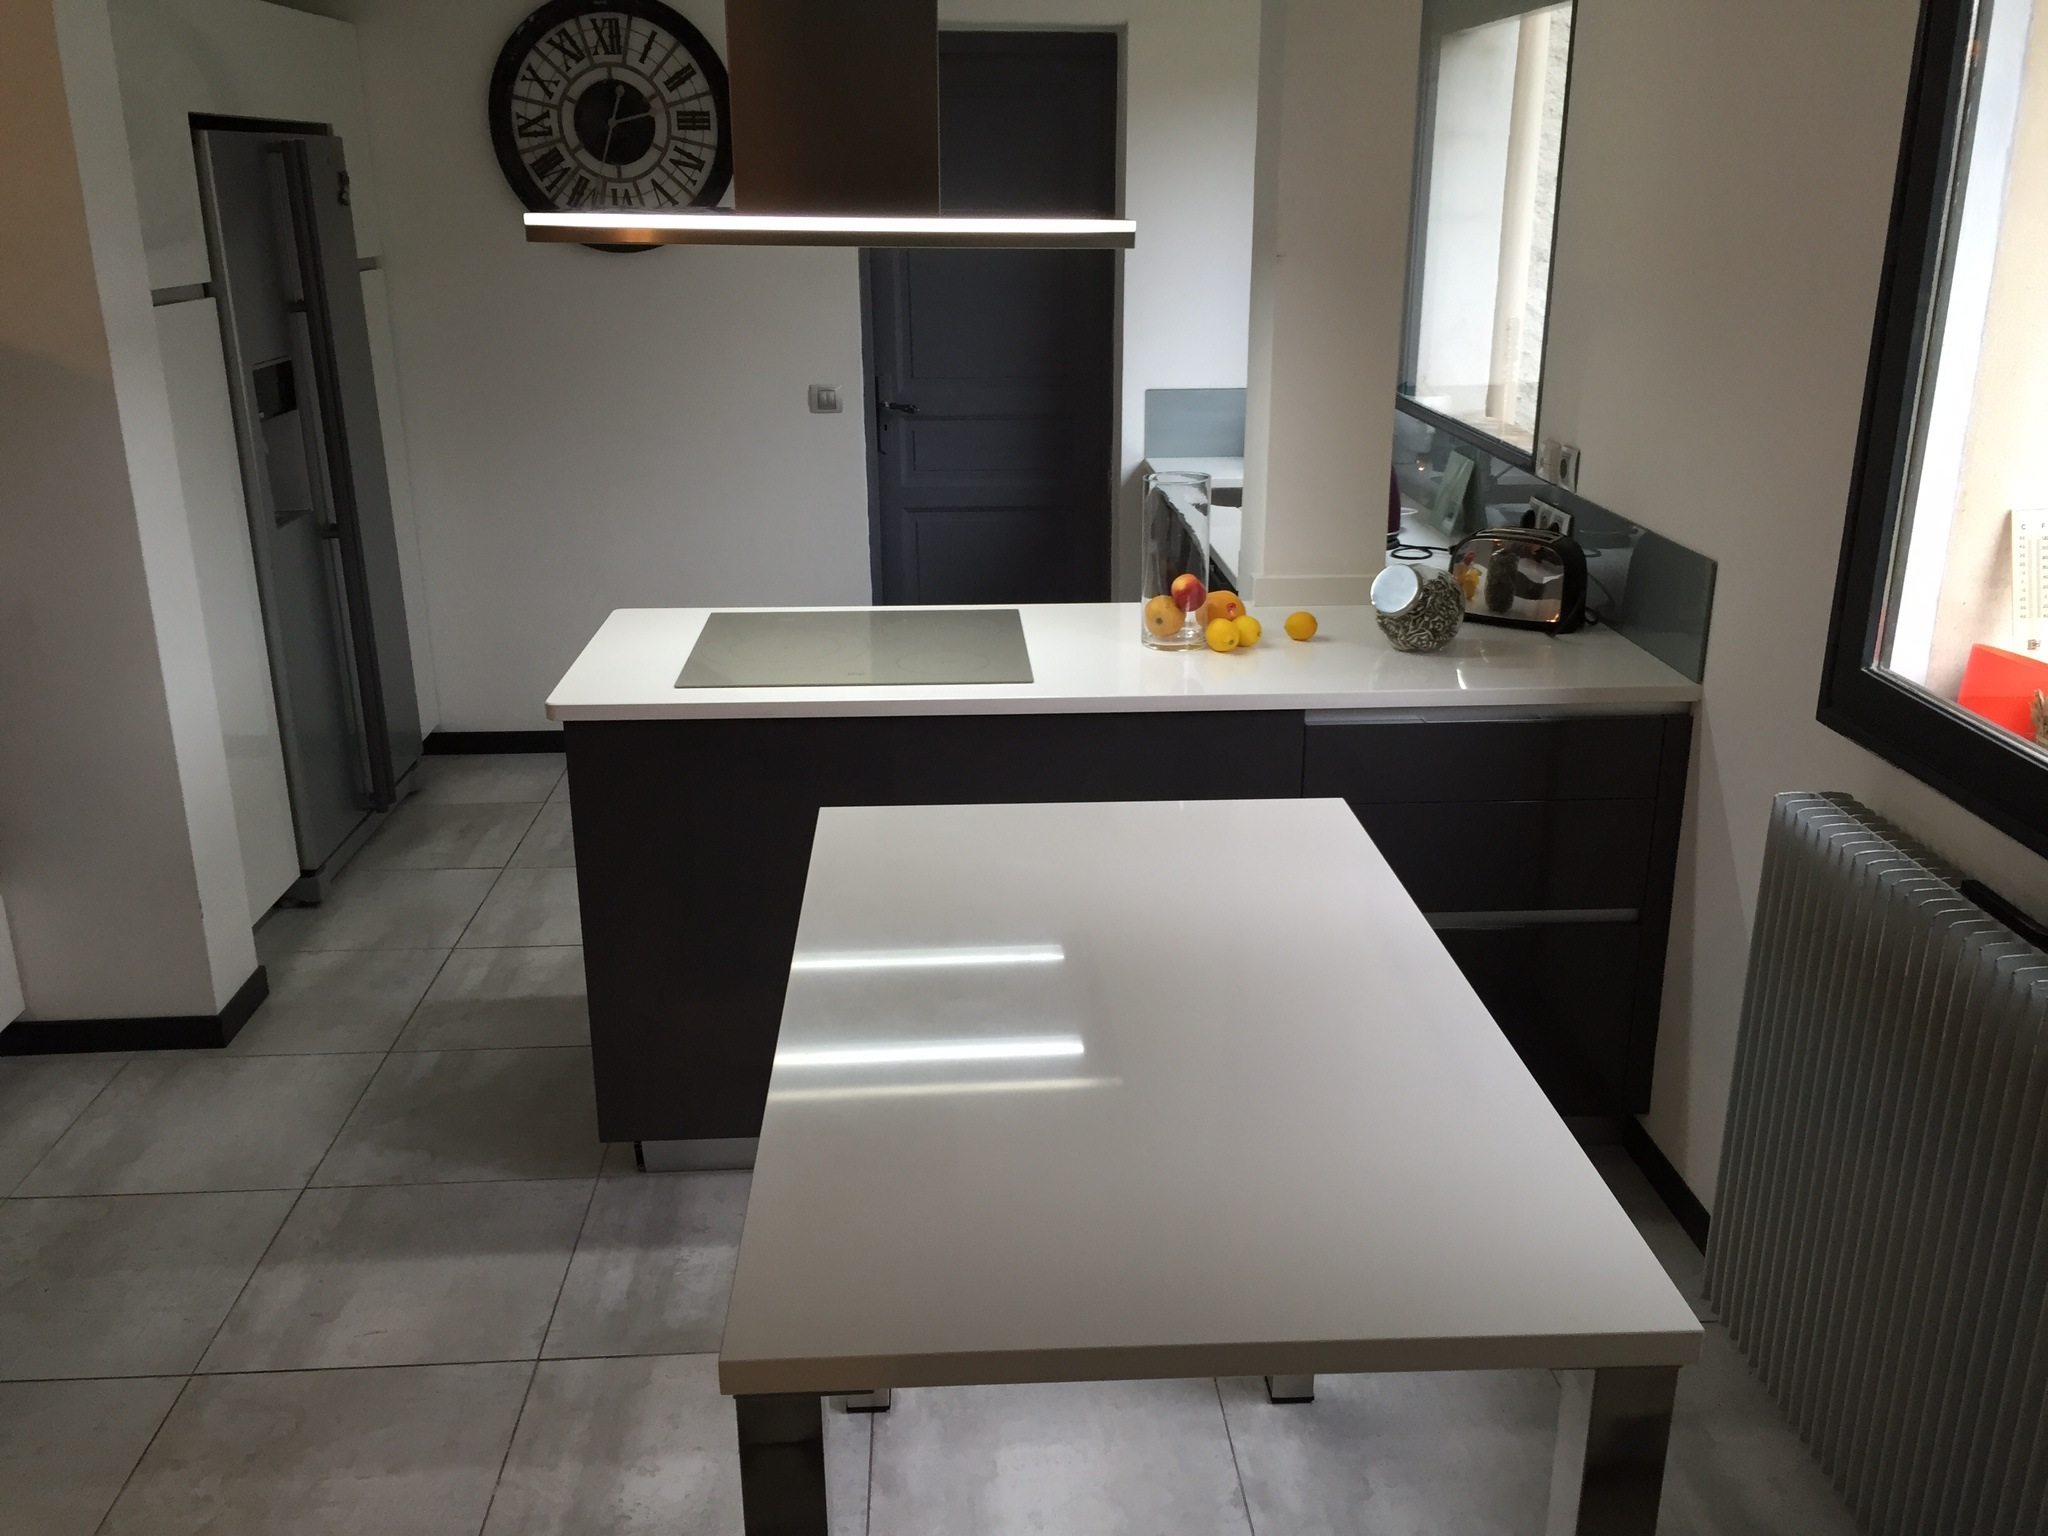 Plan de travail granit quartz table en mabre paris for Plan de travail table cuisine